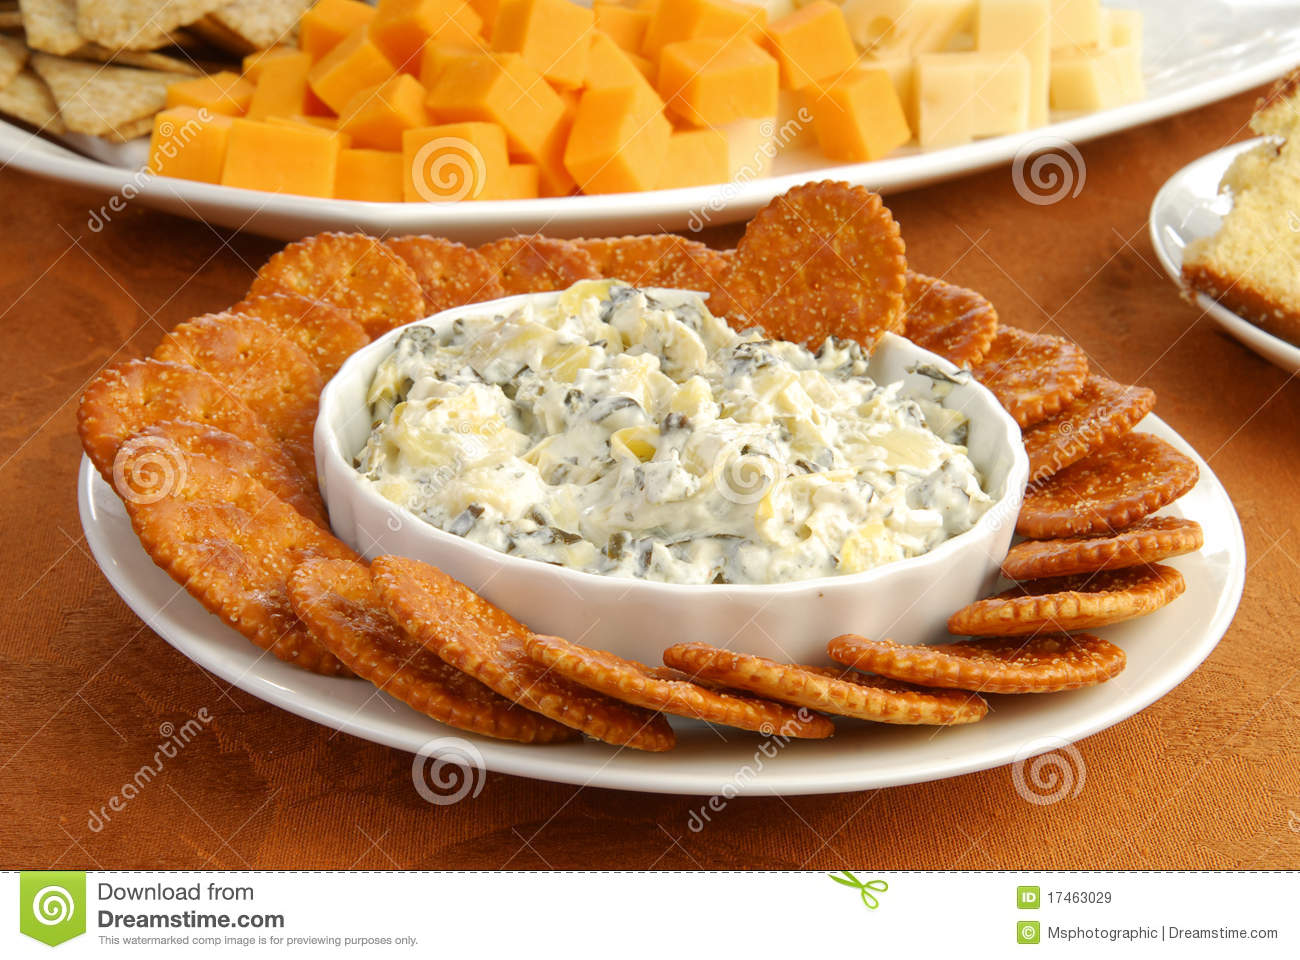 Cheese Dip And Crackers Royalty Free Stock Images   Image  17463029